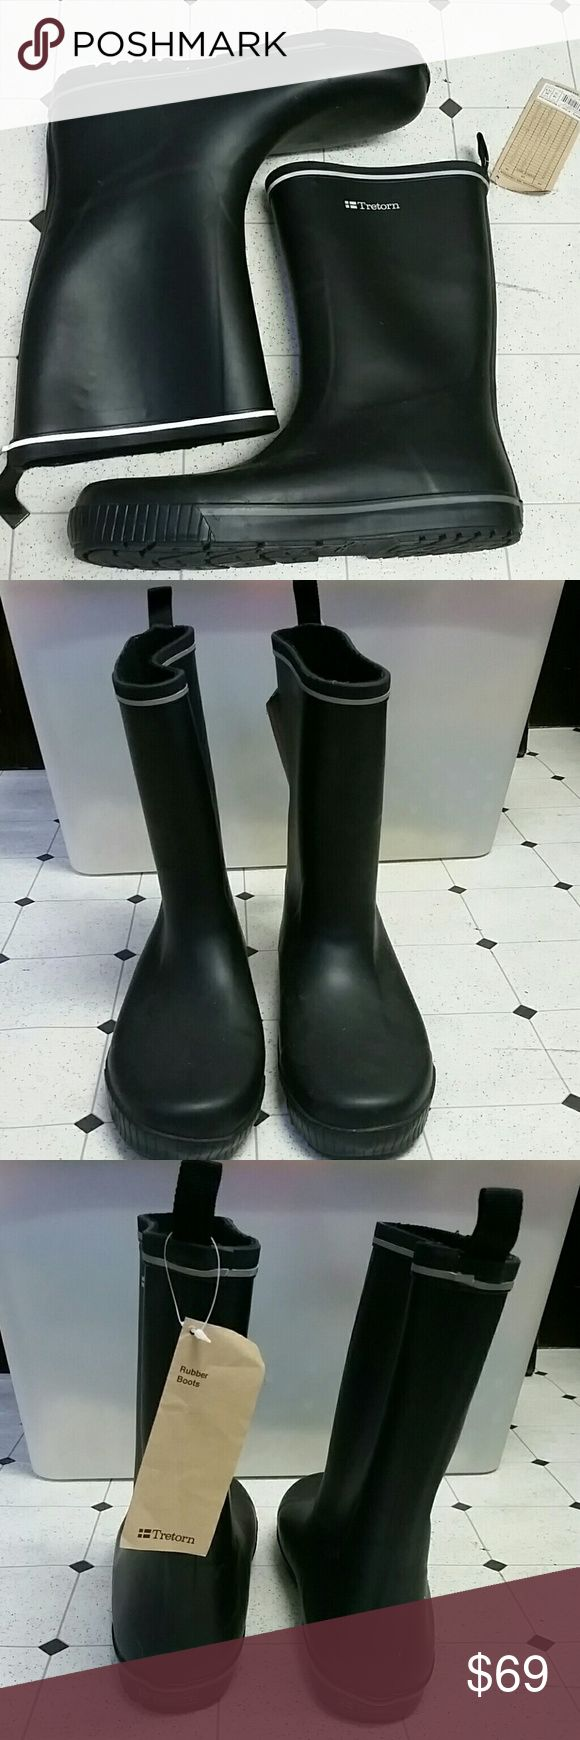 NWT Brand NEW Tretorn Rubber Boots Size 11 NWT Brand NEW Tretorn Rubber Boots Size 11.. for women it's a size 12.5 as shown on label. Phantom Black Color. Tretorn Shoes Winter & Rain Boots